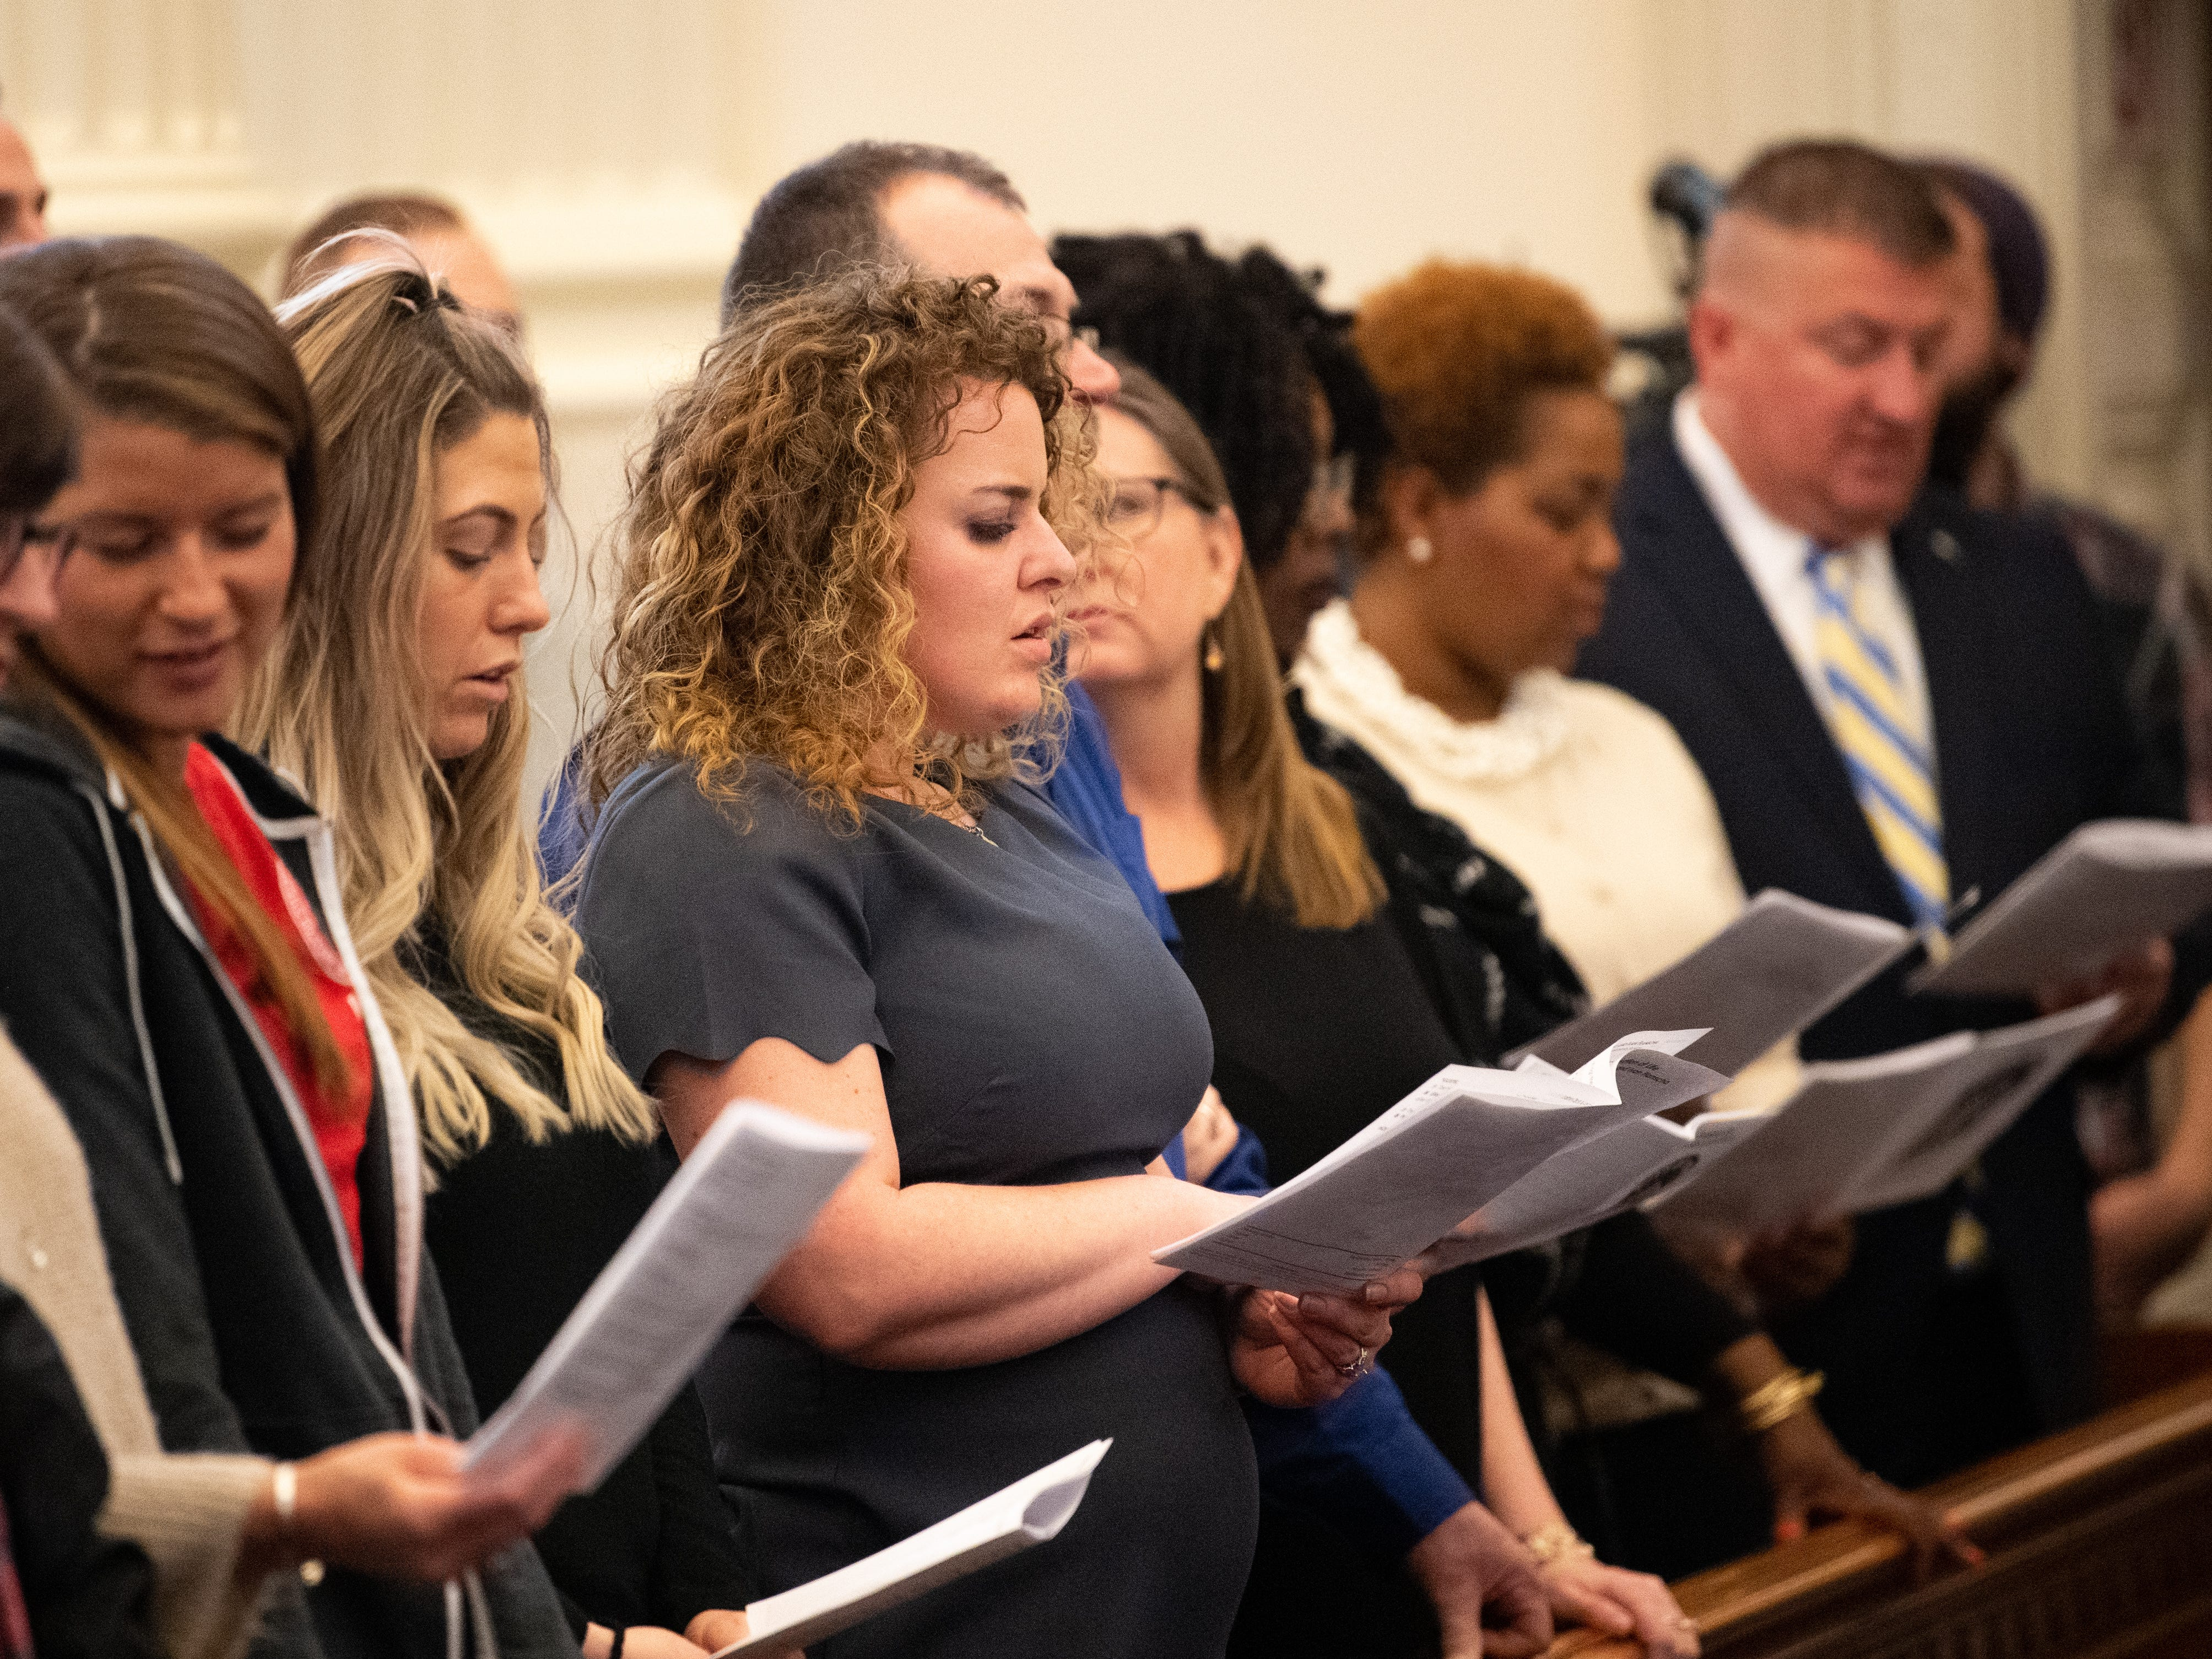 During Friday's service in York, guests joined the pastor in singing hymns.